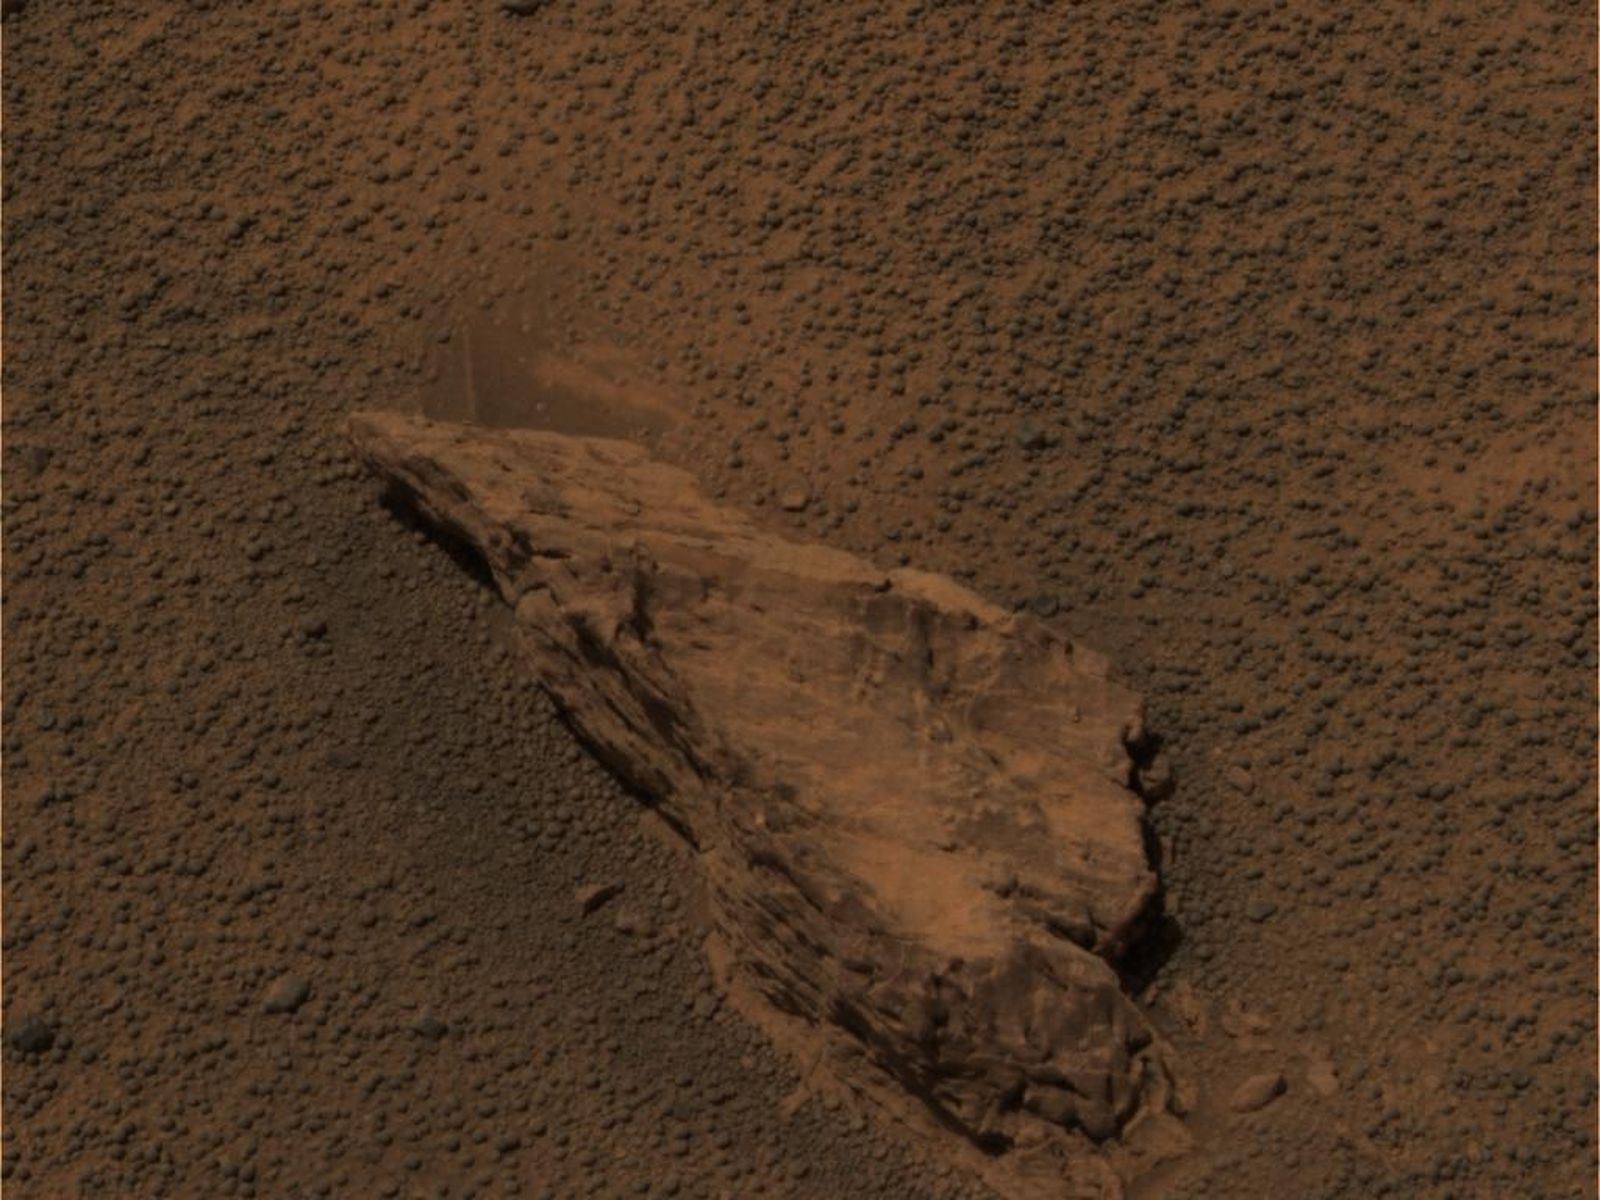 Space Images | A Lion of a Stone